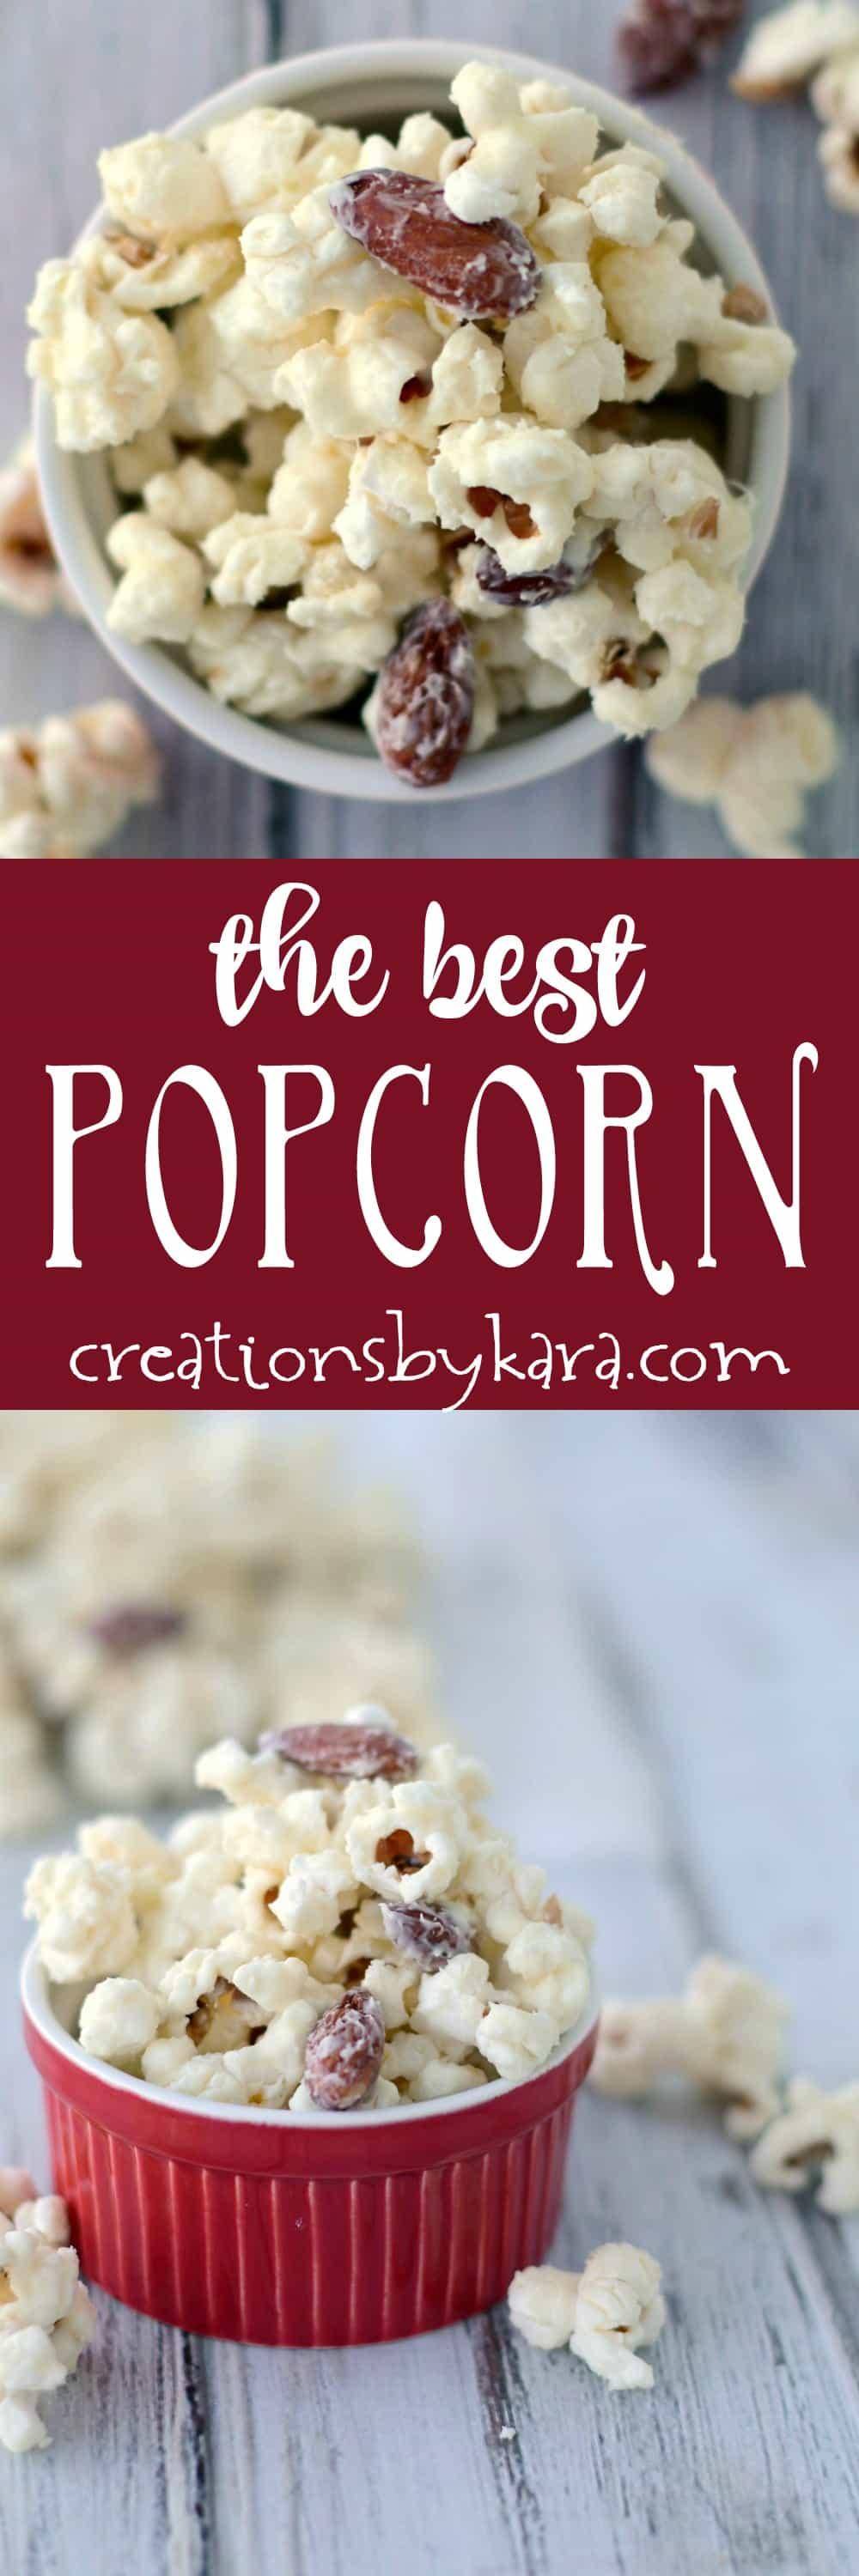 White Chocolate Popcorn takes about five minutes to make, and it is absolutely addicting! The best popcorn ever! An easy snack that no one can resist. #popcorn #snack #whitechocolate